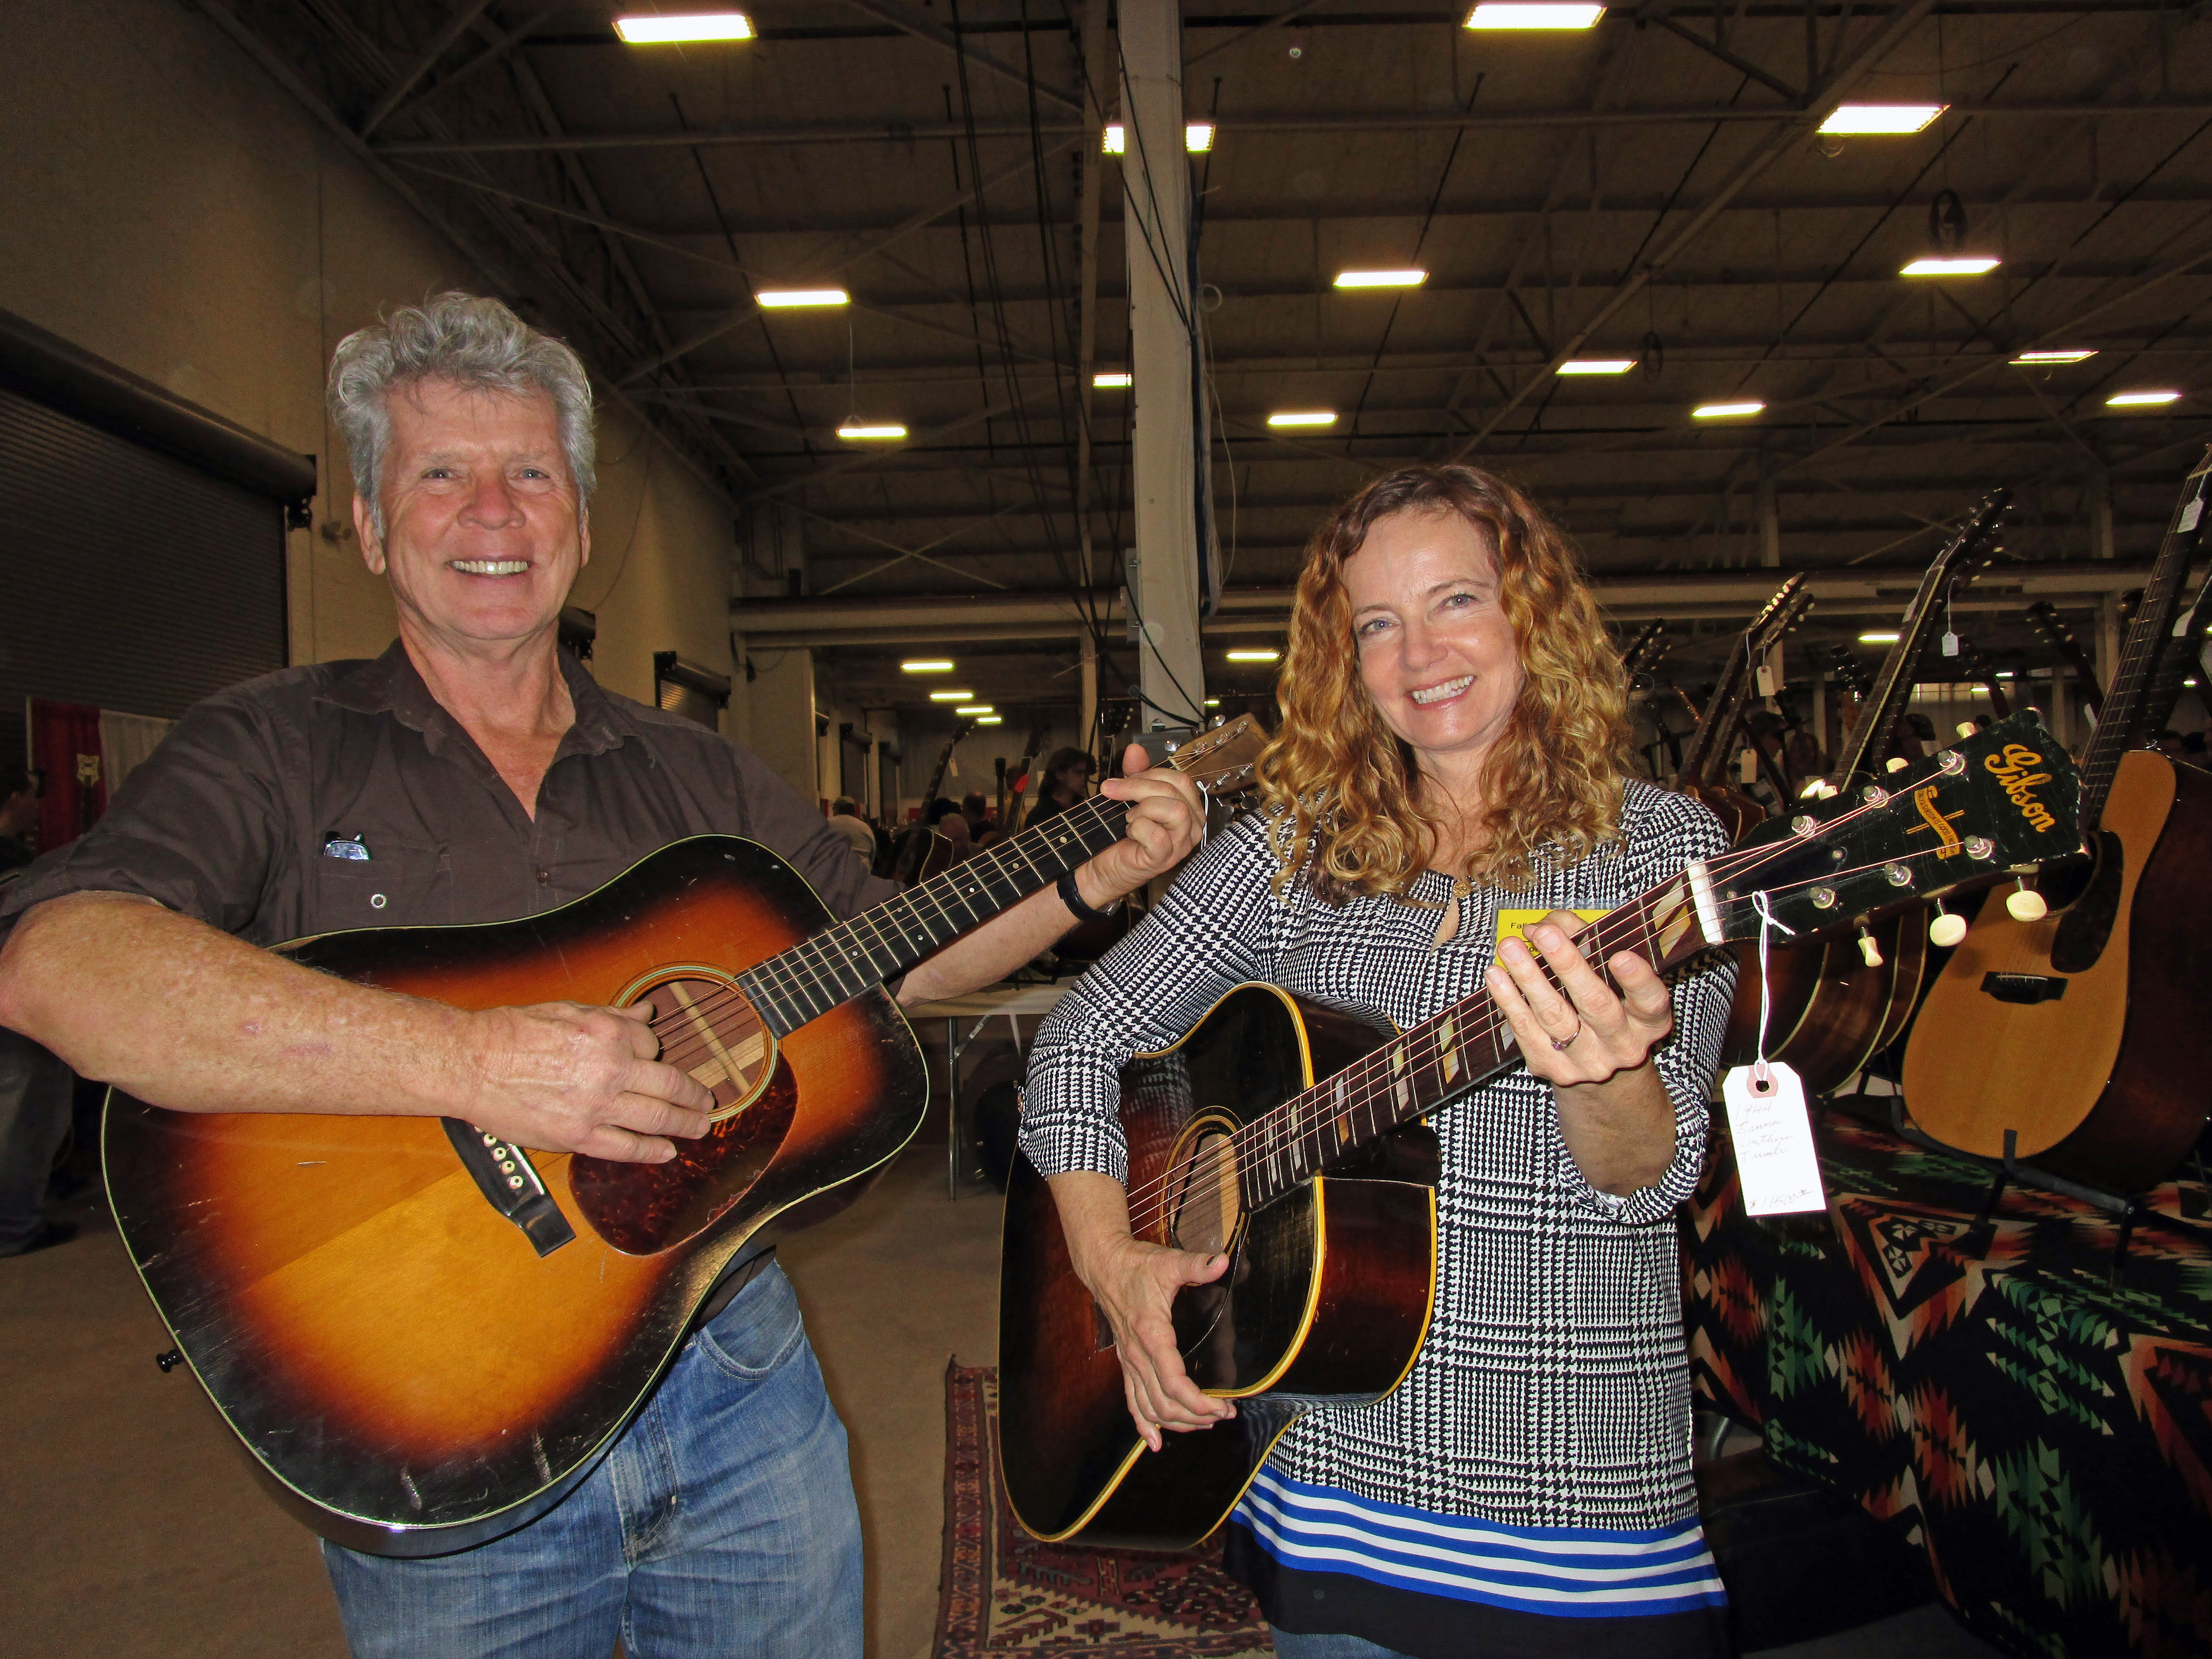 Show promoters Gary and Bonnie Burnette of Bee-3 Vintage with a '39 Martin D-18 shaded-top and '44 Gibson Southern Jumbo